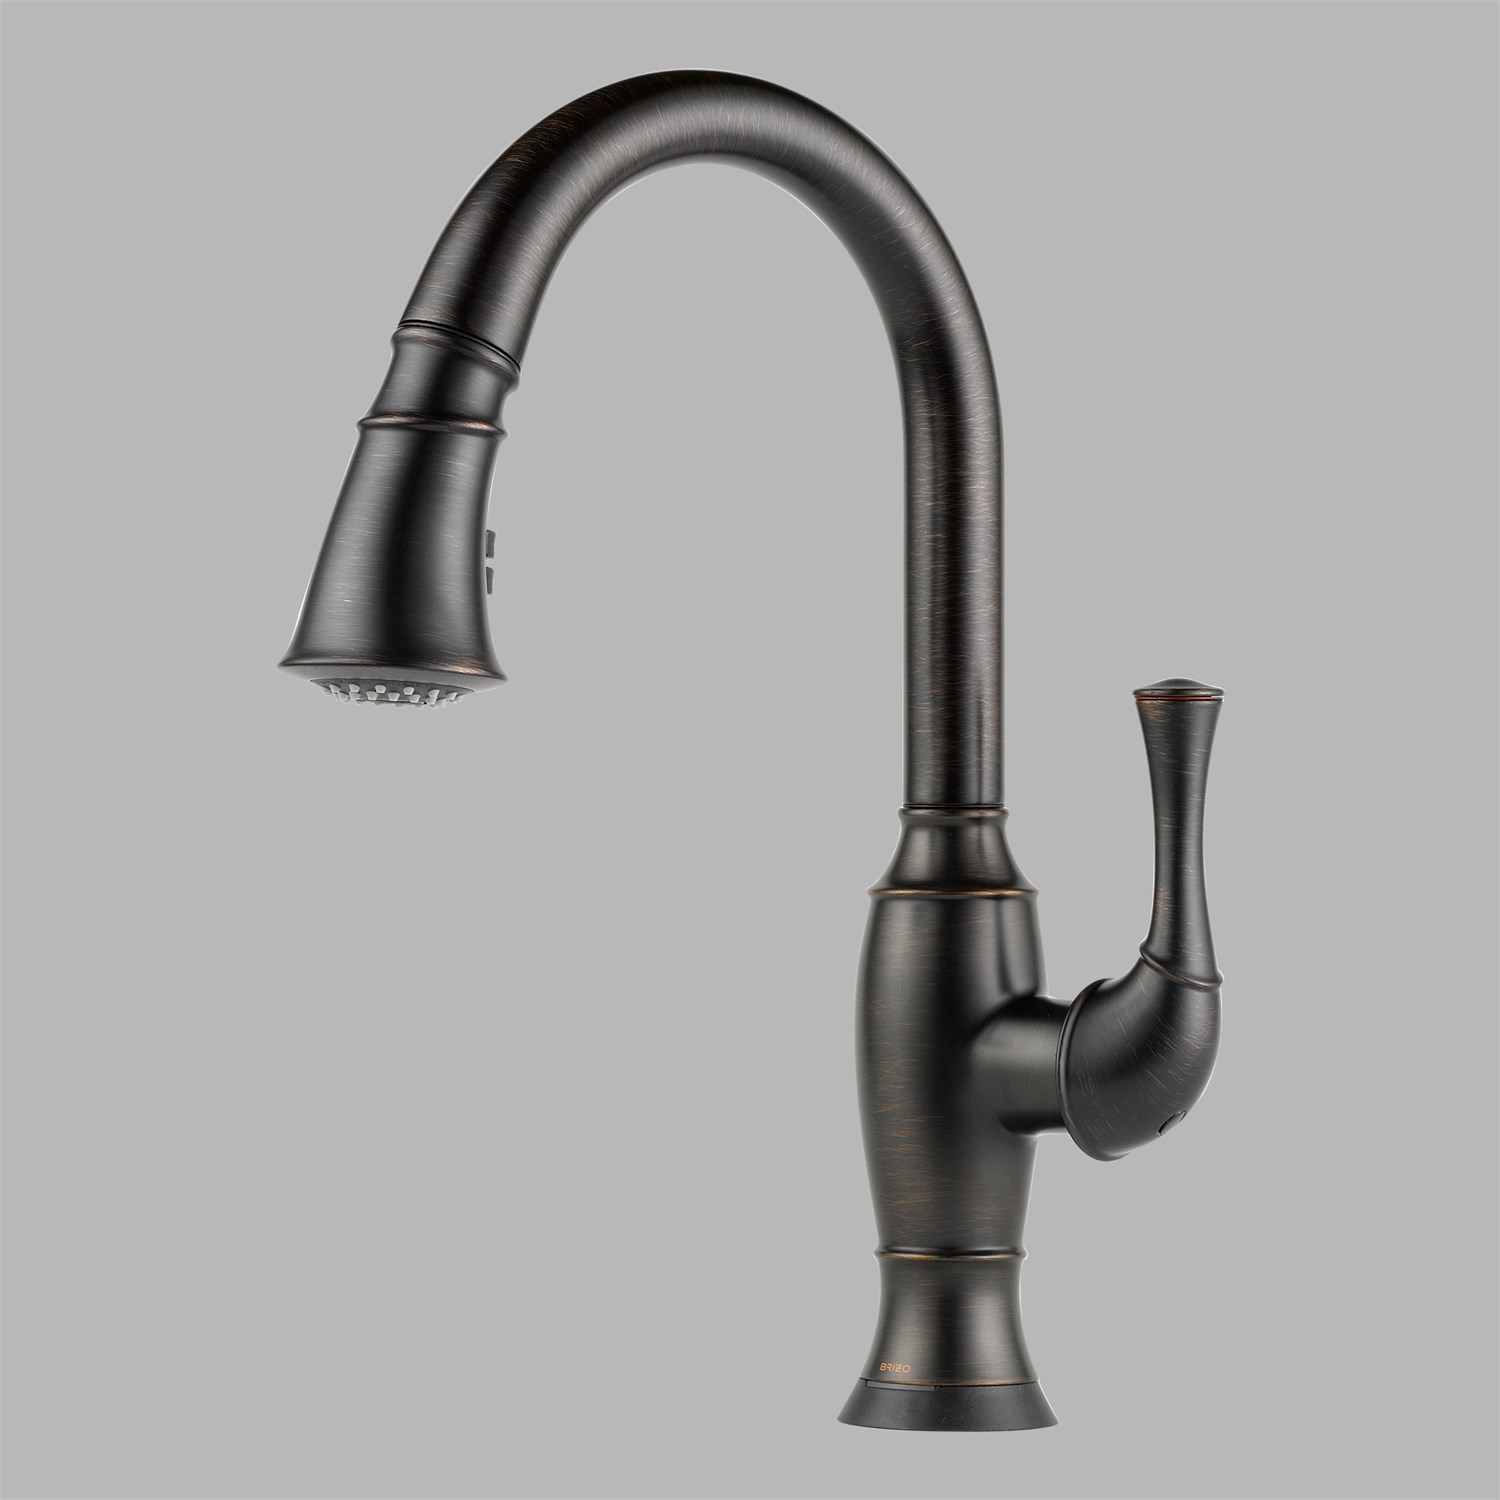 Touch Activated Kitchen Faucet | Bridge Kitchen Faucets | Brizo Kitchen Faucets